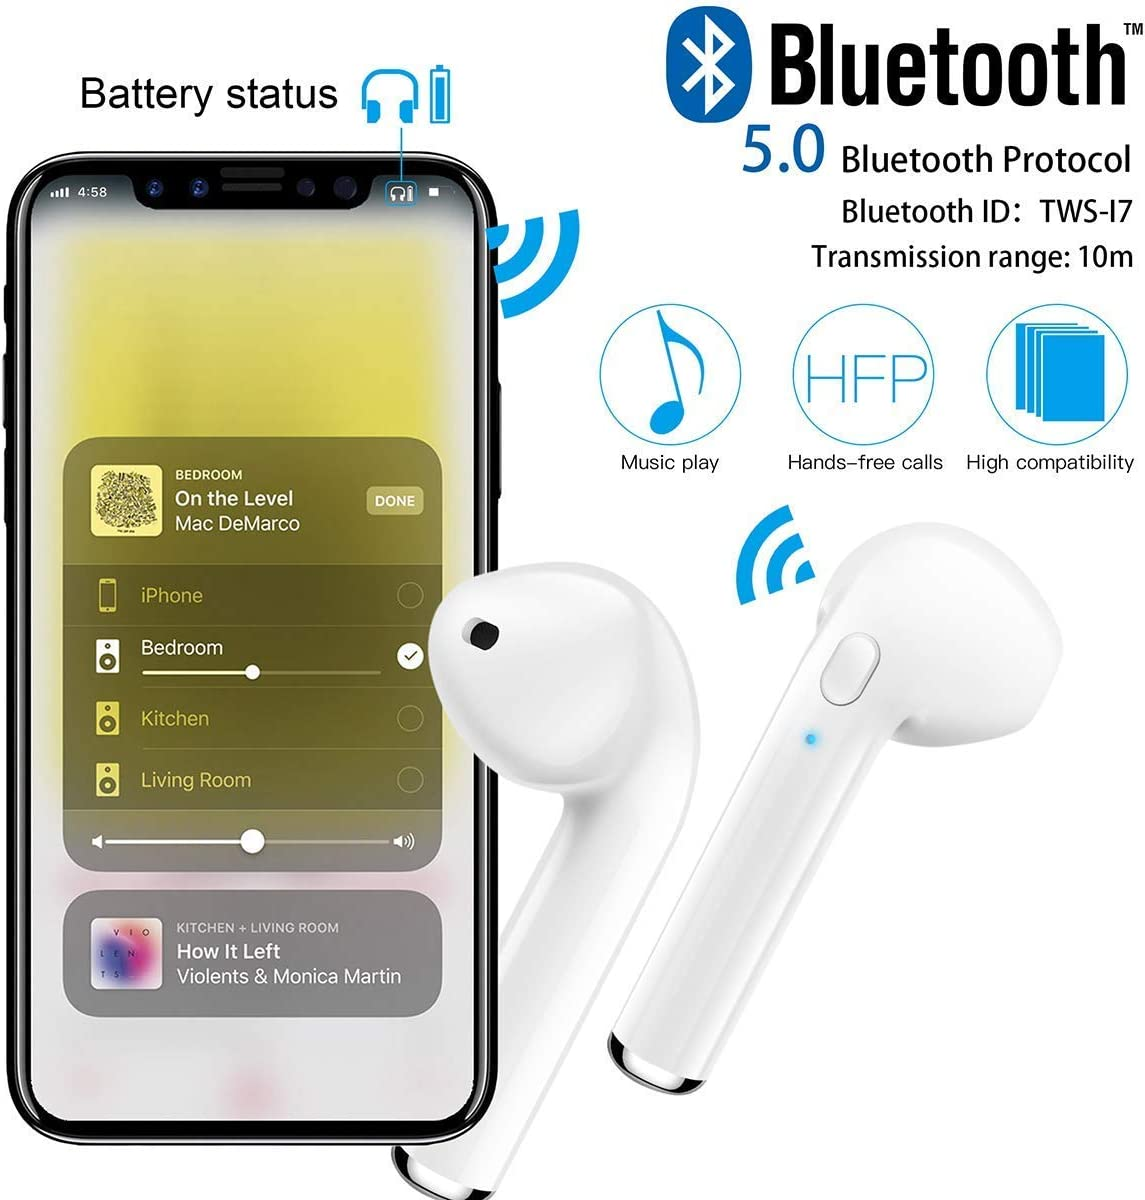 Wireless Earbuds Noise Canceling Headphones with Charging Case Built-in Mic TWS Stereo Headphones Bluetooth 5.0 in Ear Wireless Earphones White